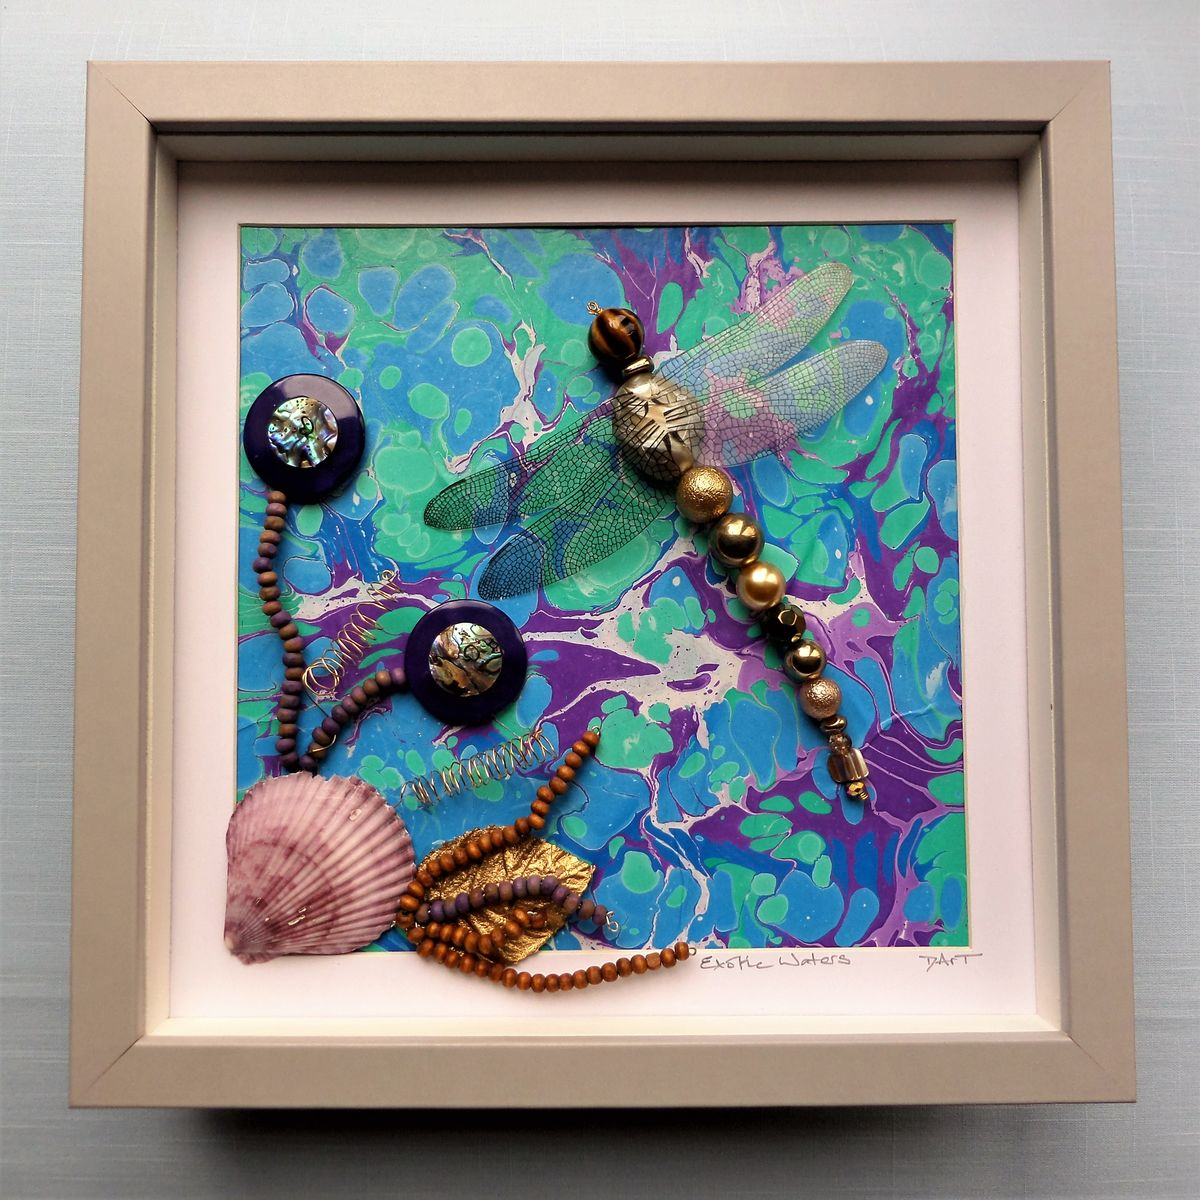 Exotic Waters, Beaded Dragonfly Box Frame - product images  of